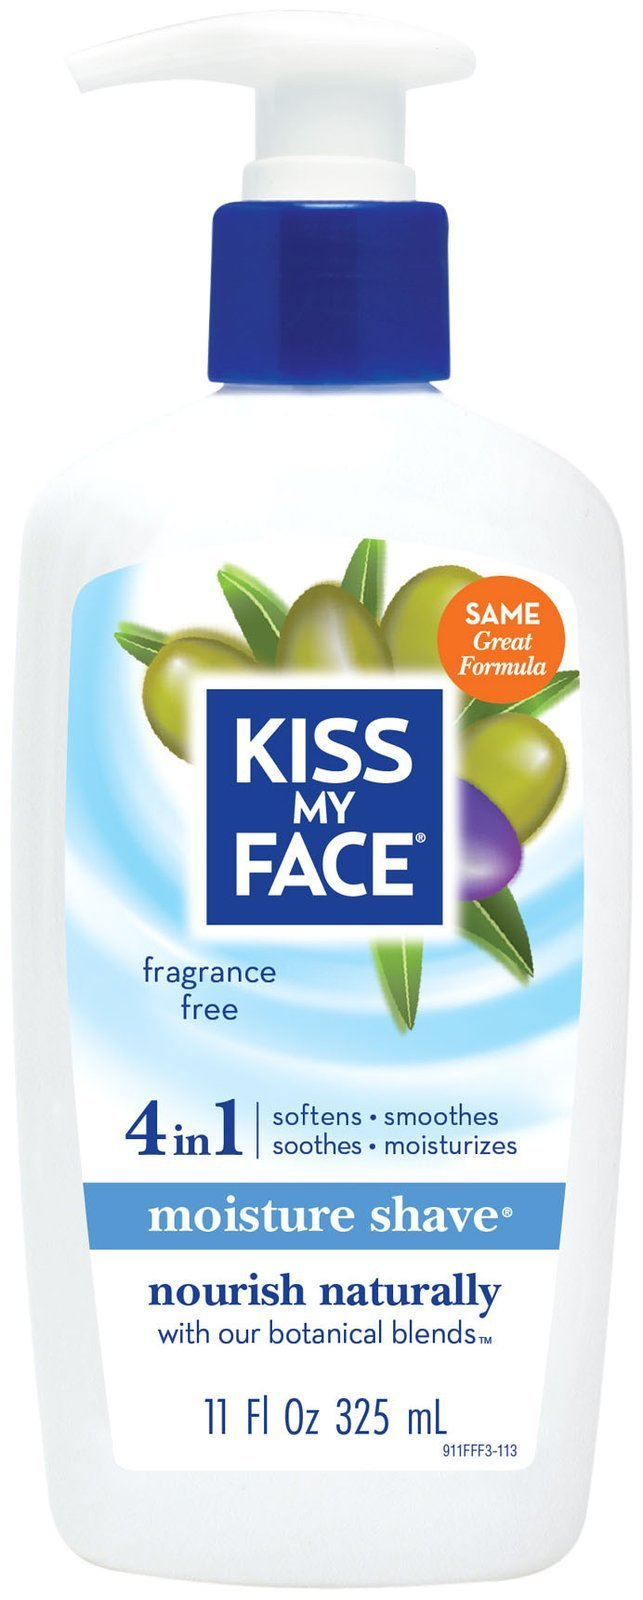 Kiss My Face Fragrance Free Moisture Shave, 11 fl oz